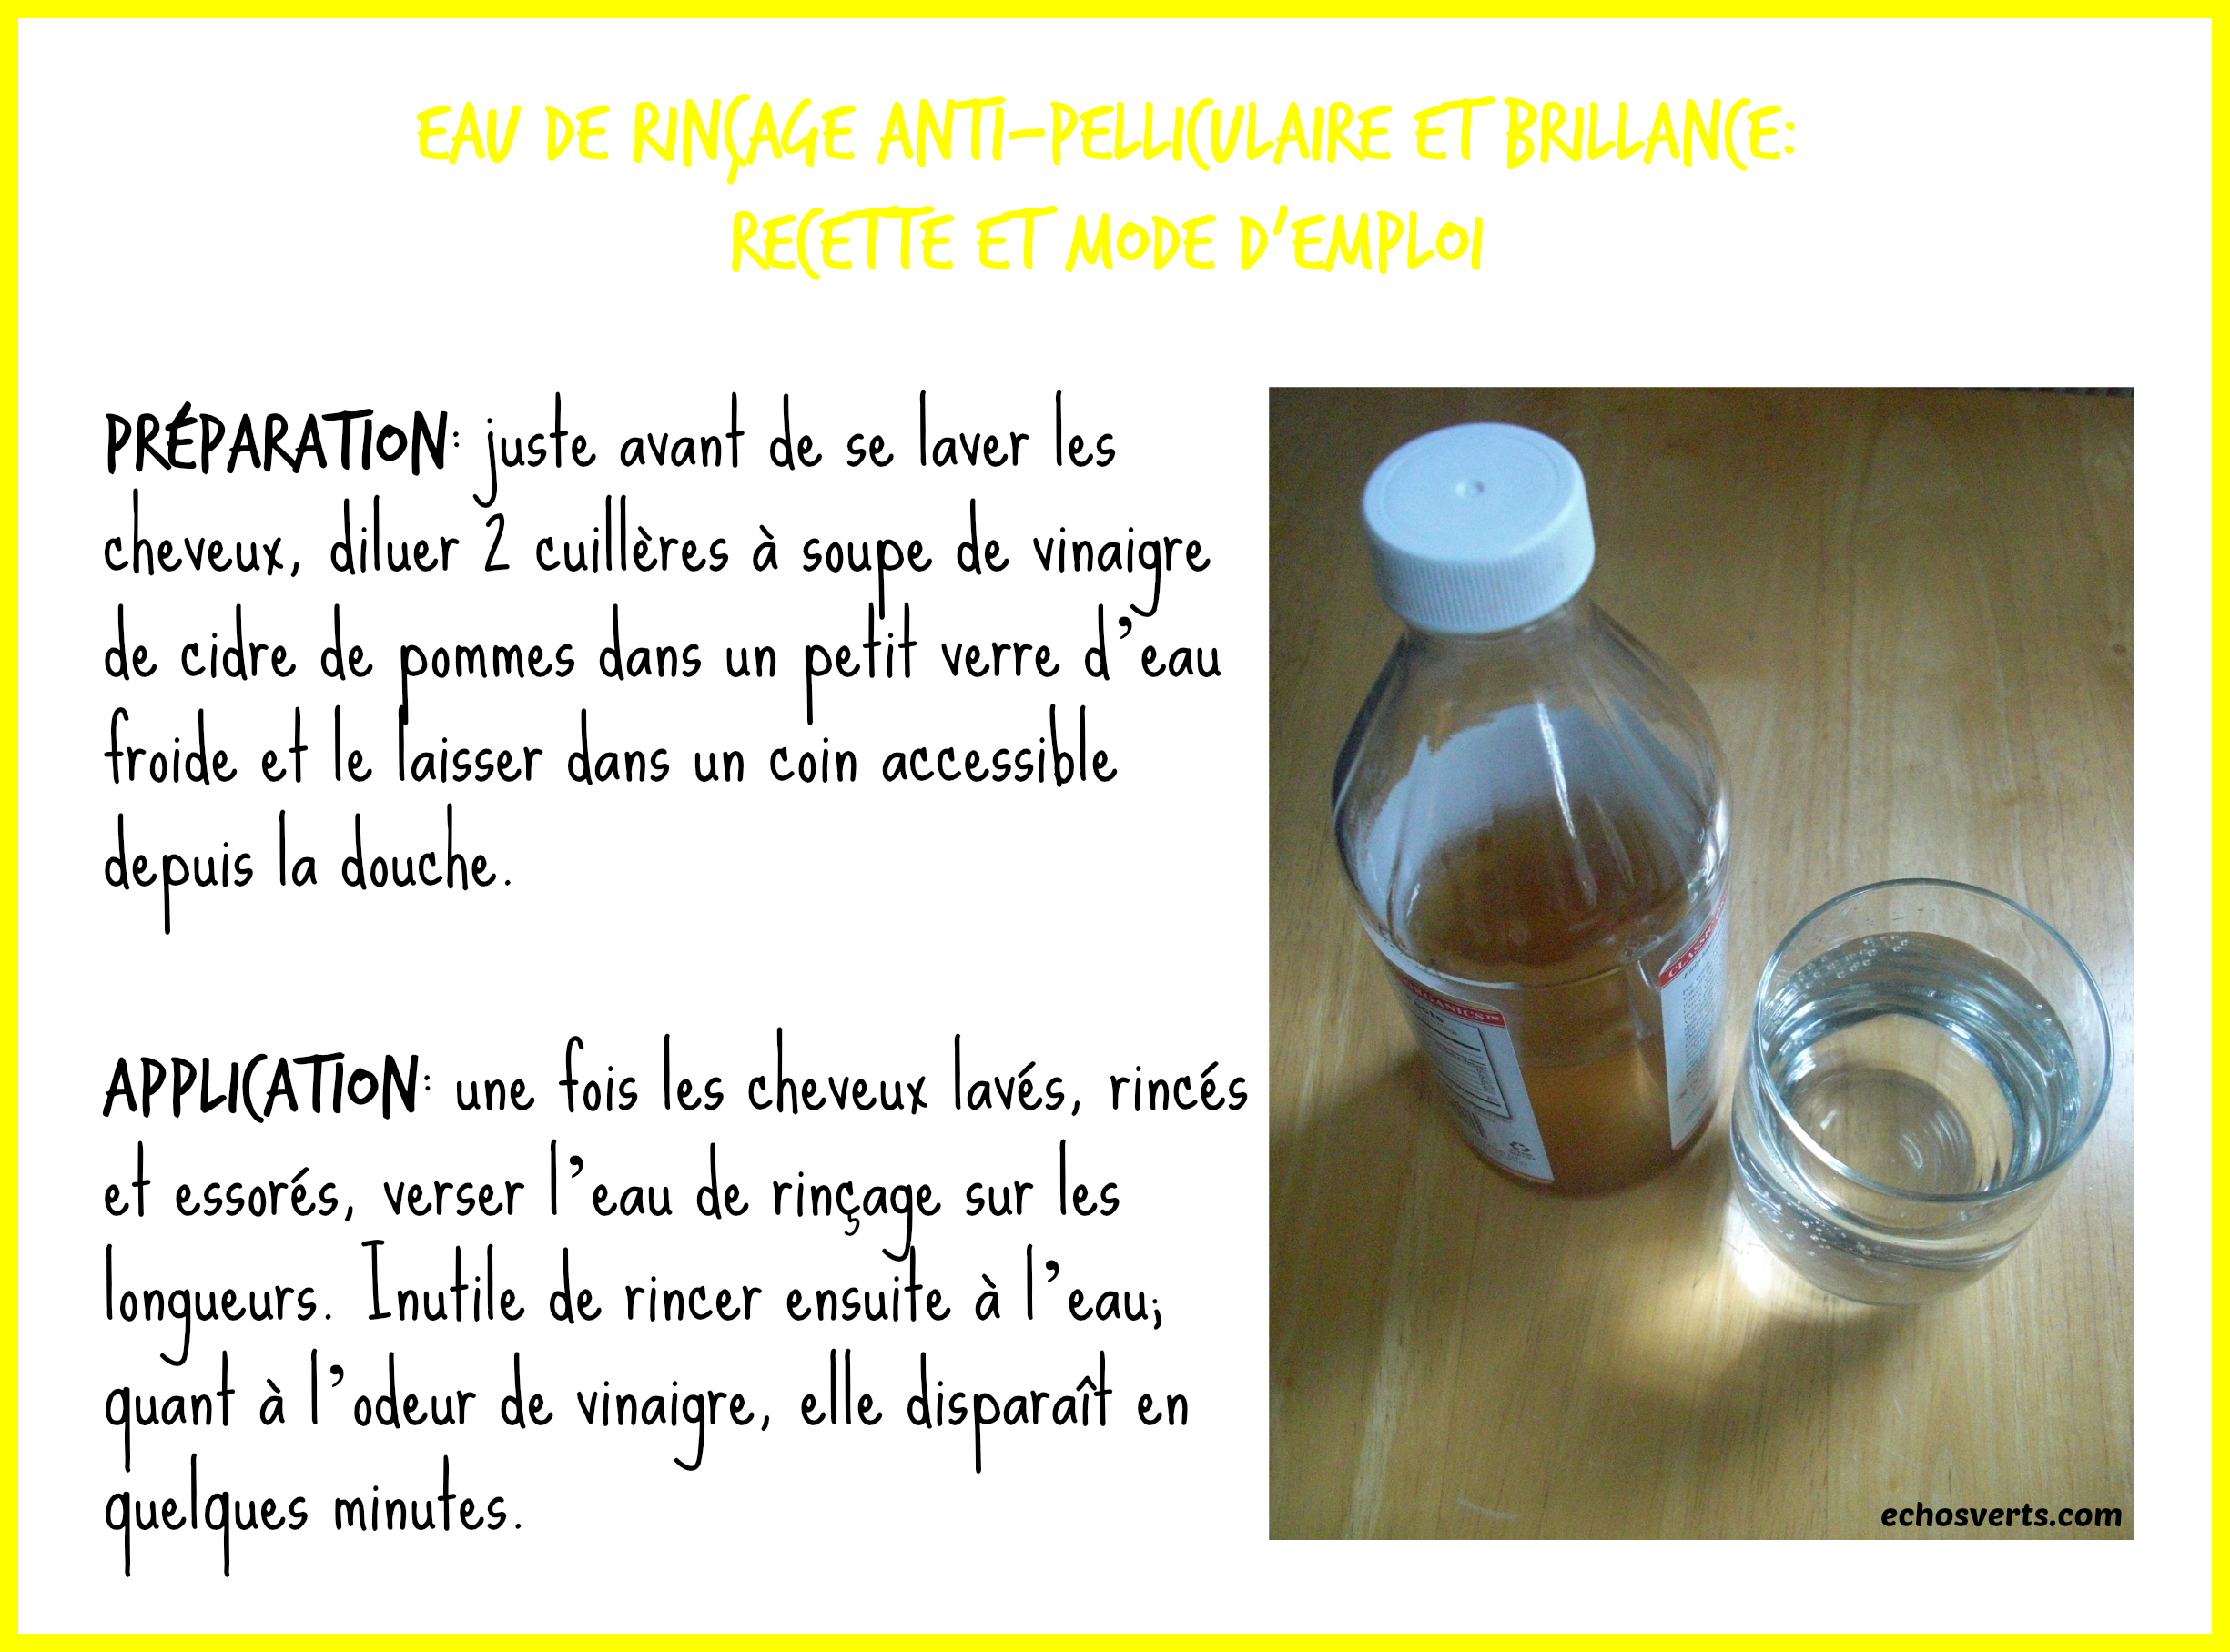 No-poo- rinçage vinaigre de cidre- recette- copyright- échos verts